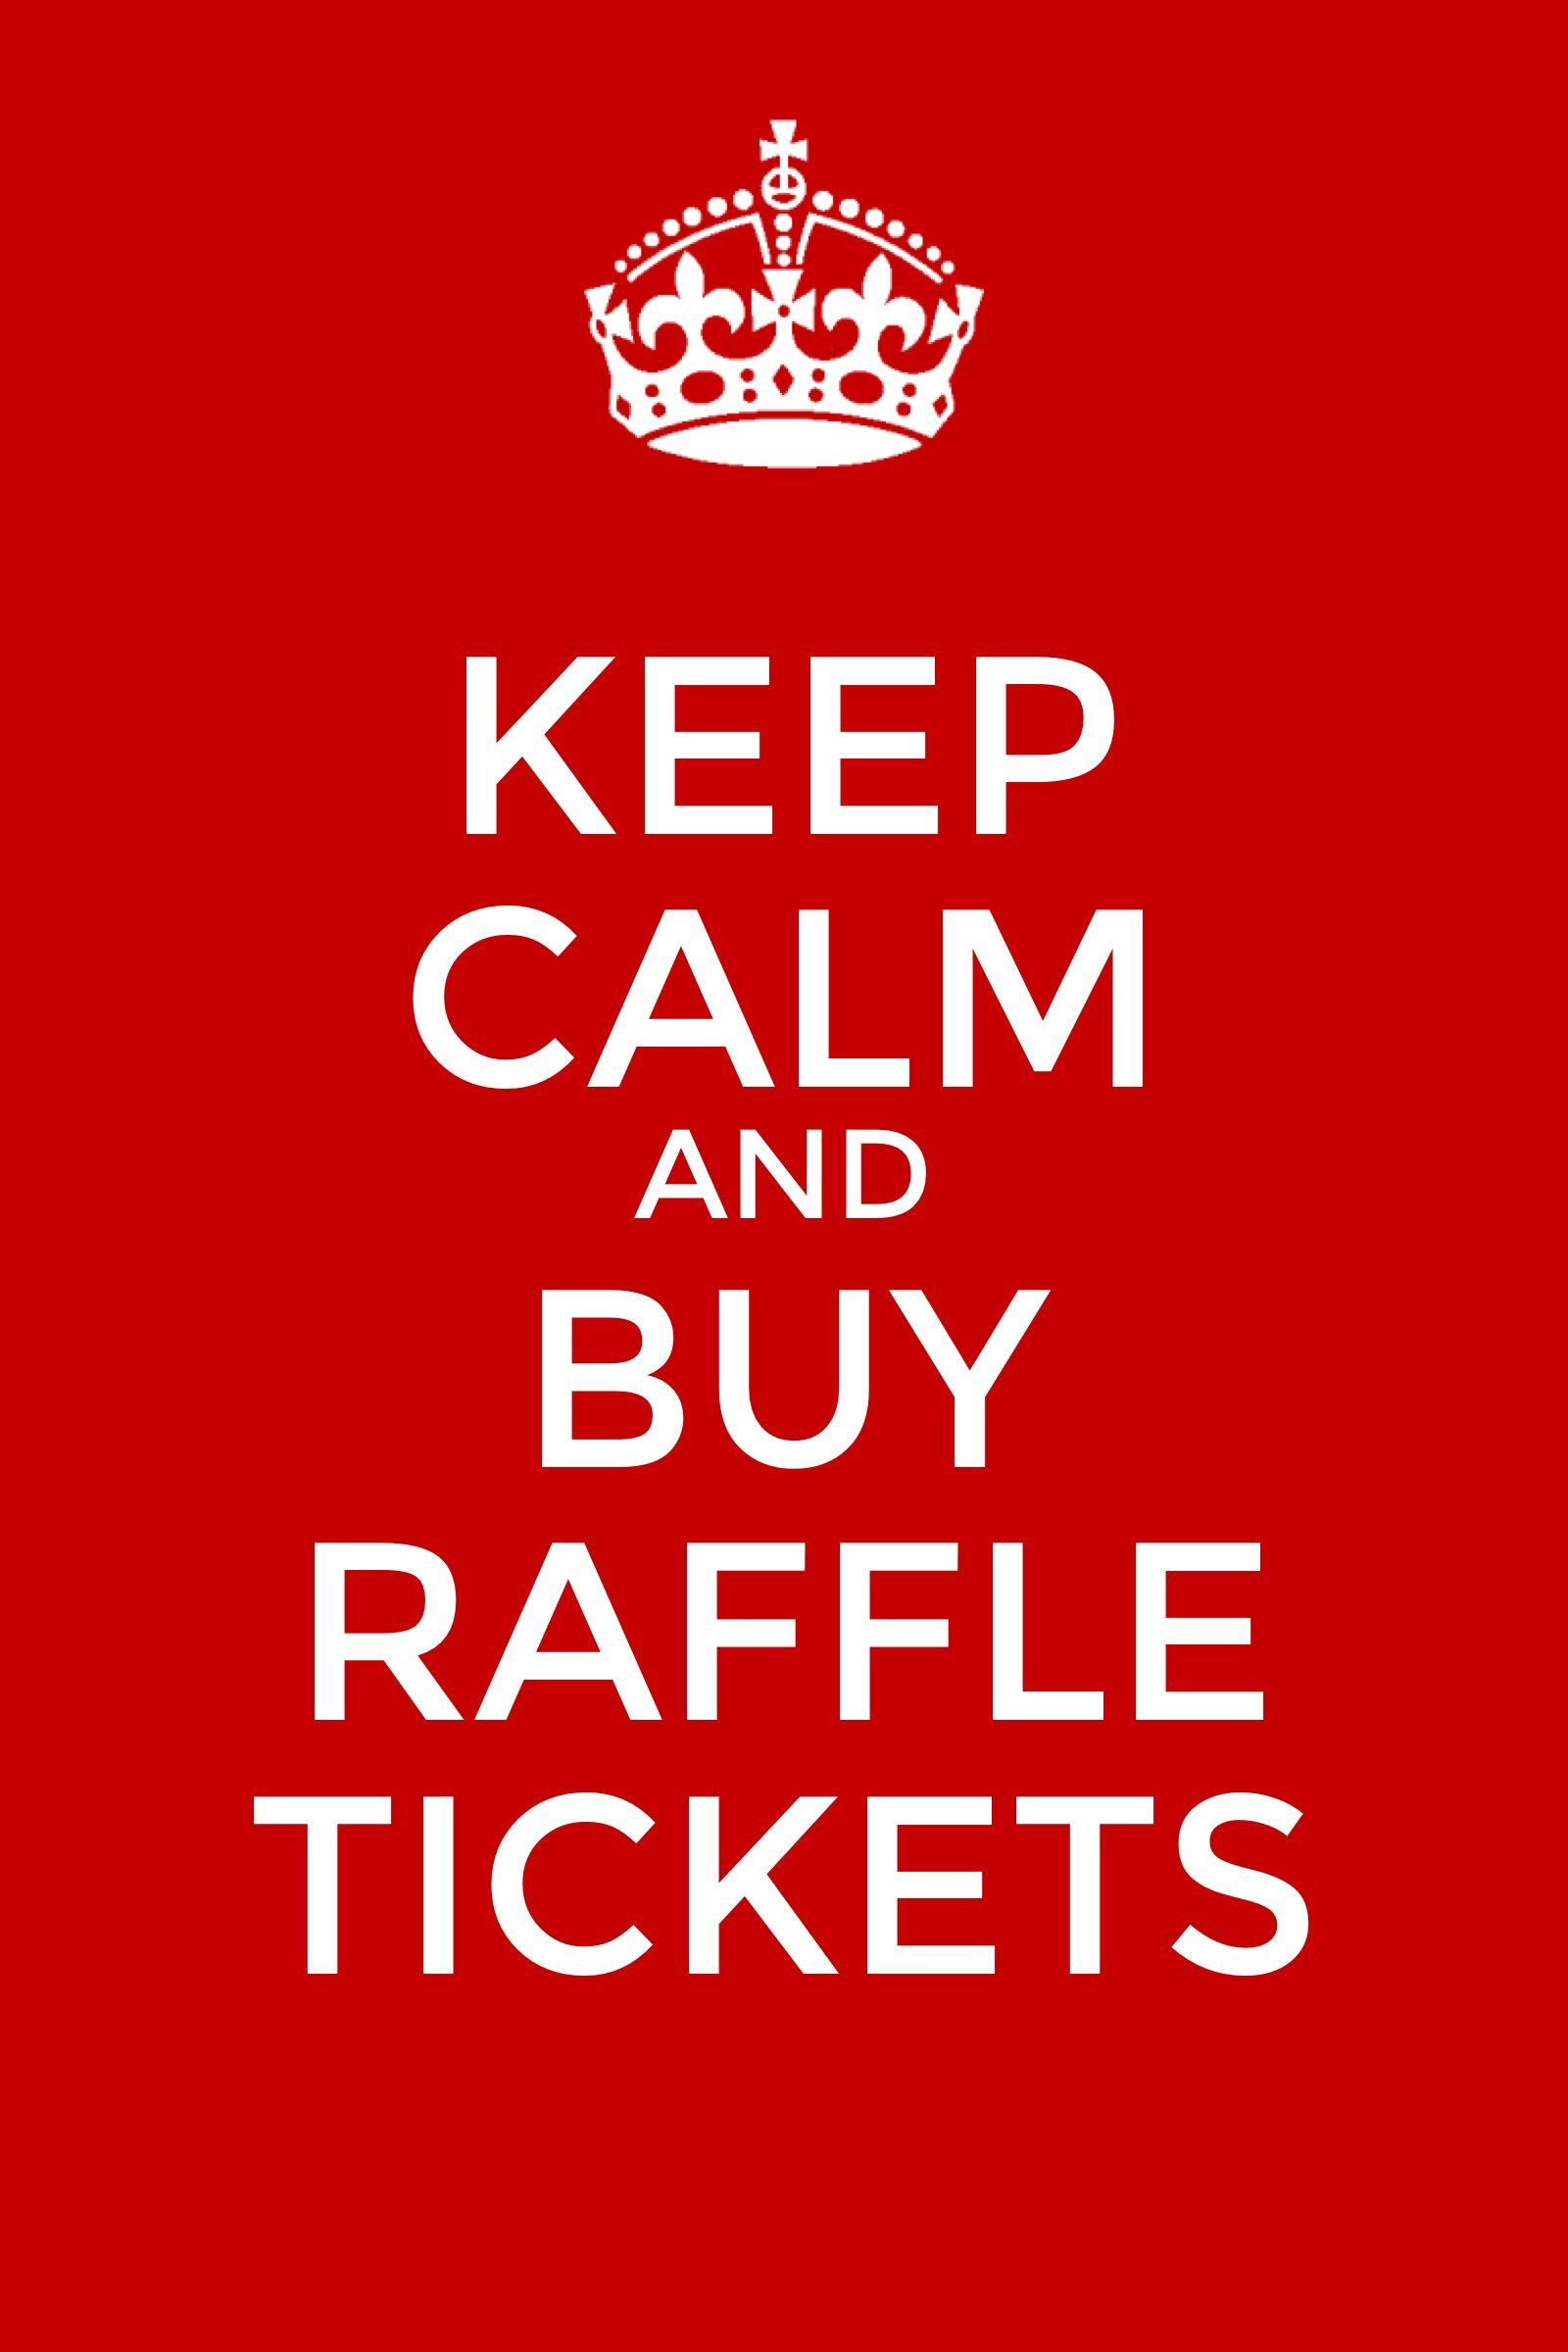 Keep Calm And Buy Raffle Tickets  Raffle Tickets Calming And